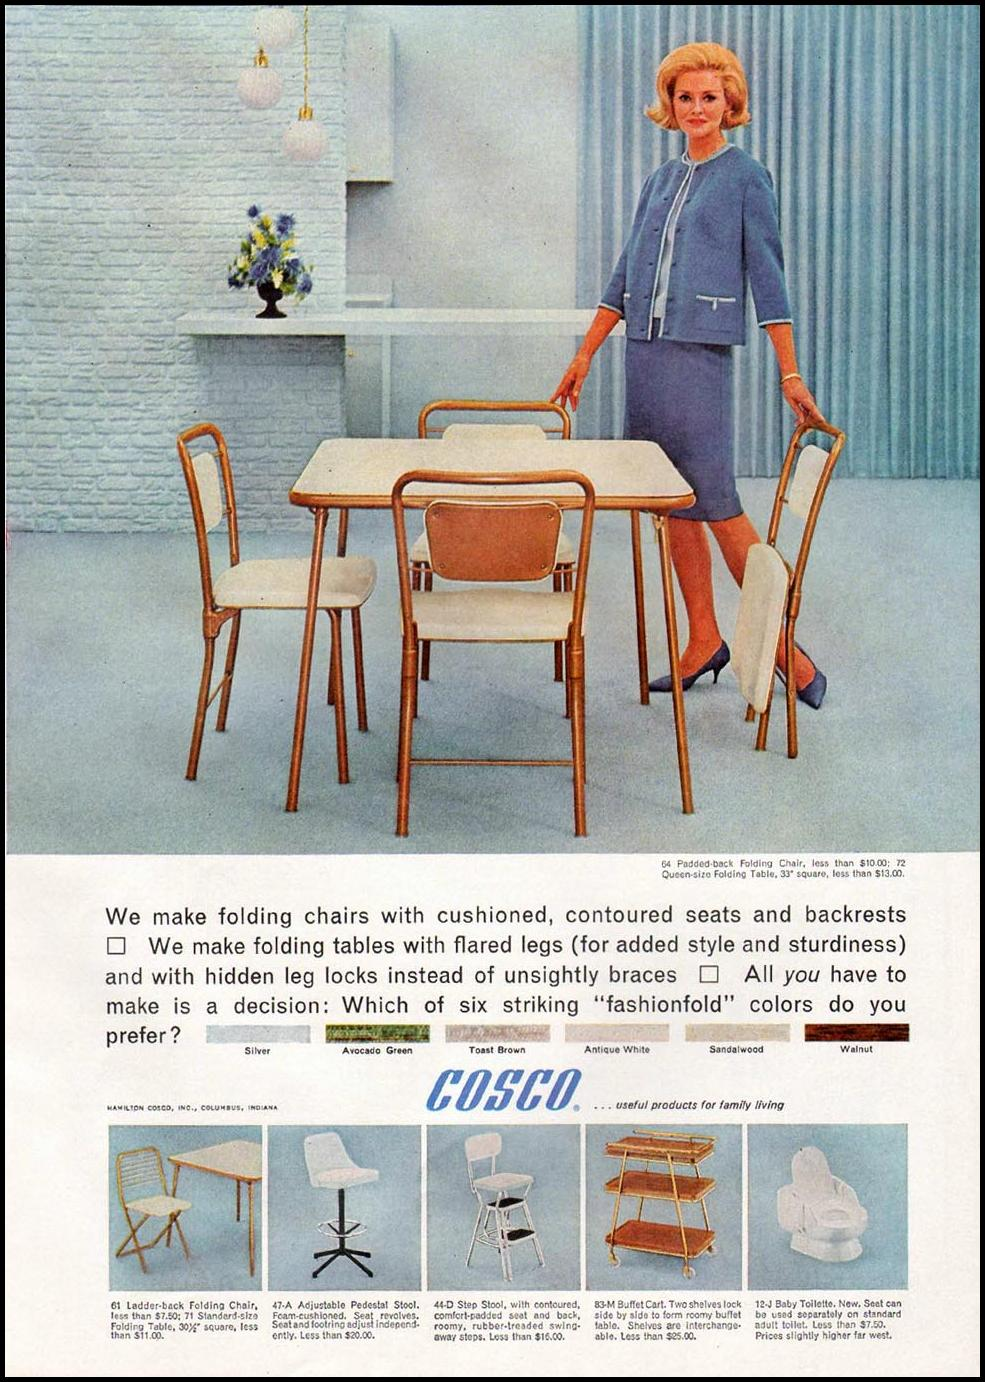 COSCO FOLDING FURNITURE GOOD HOUSEKEEPING 10/01/1965 p. 185